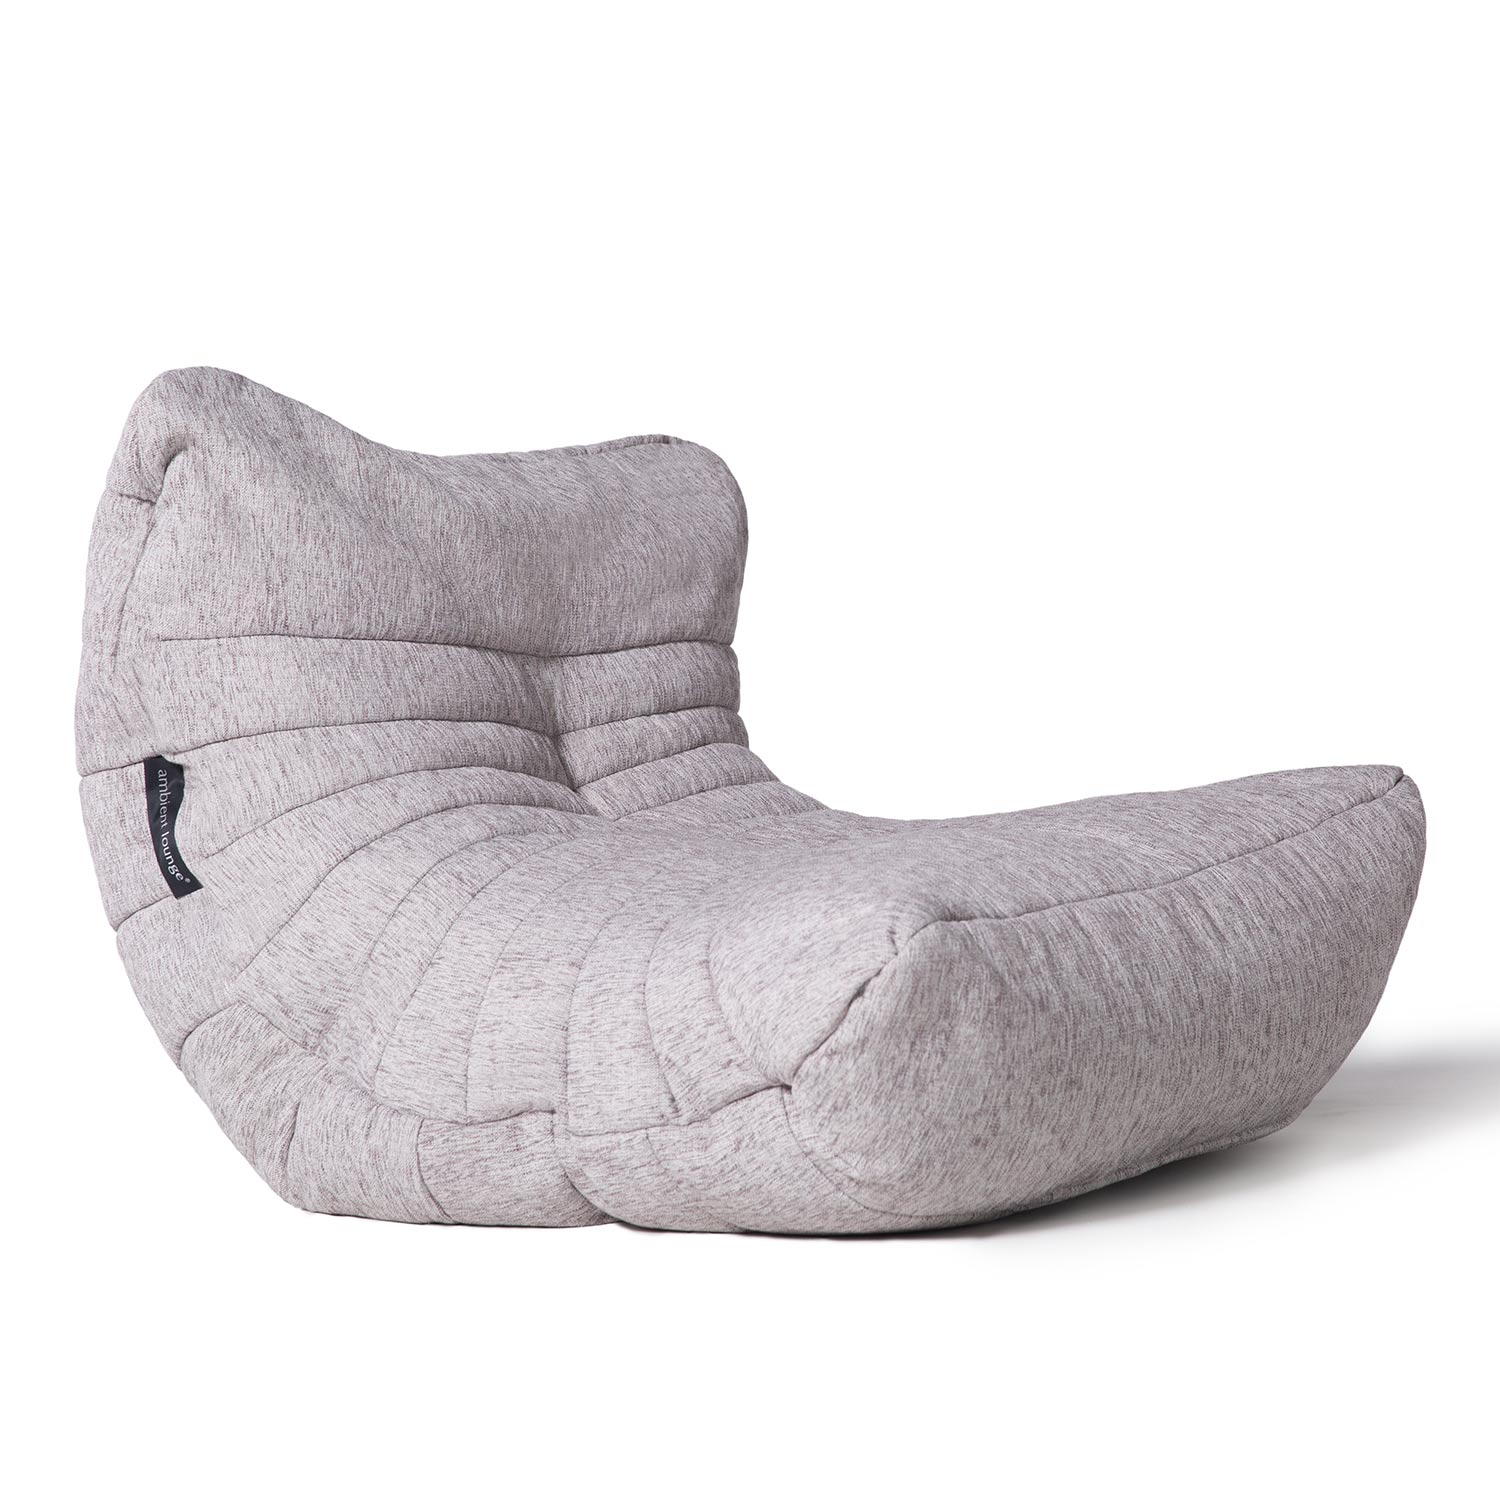 5425174f97 ... White Acoustic Bean Bags - Ambient Lounge ...